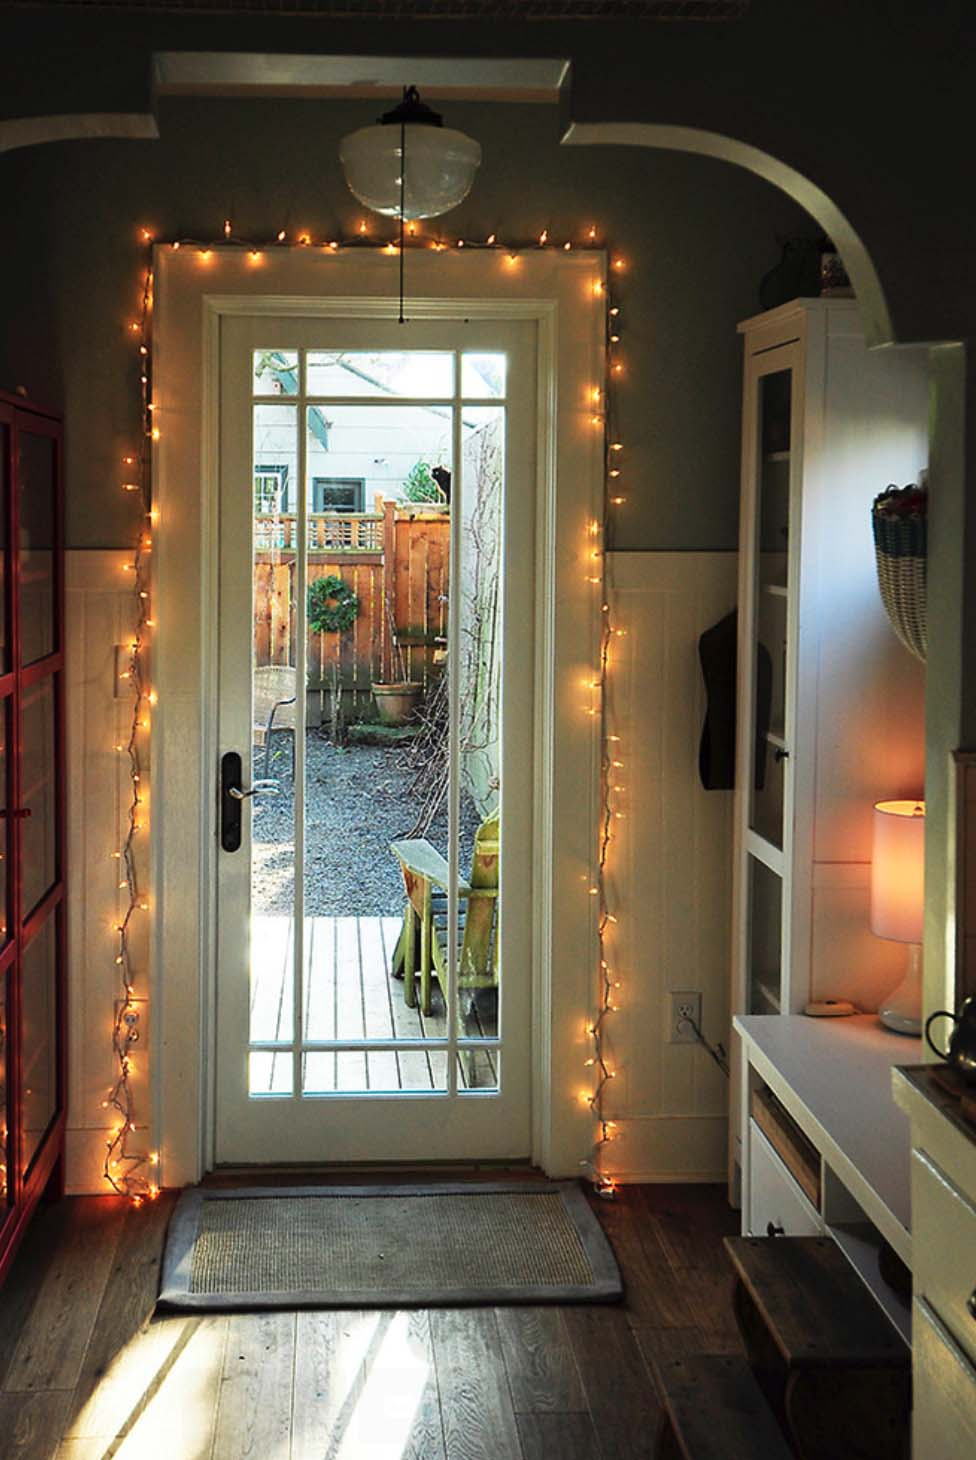 Enhance the Threshold with a Sparkling Welcome